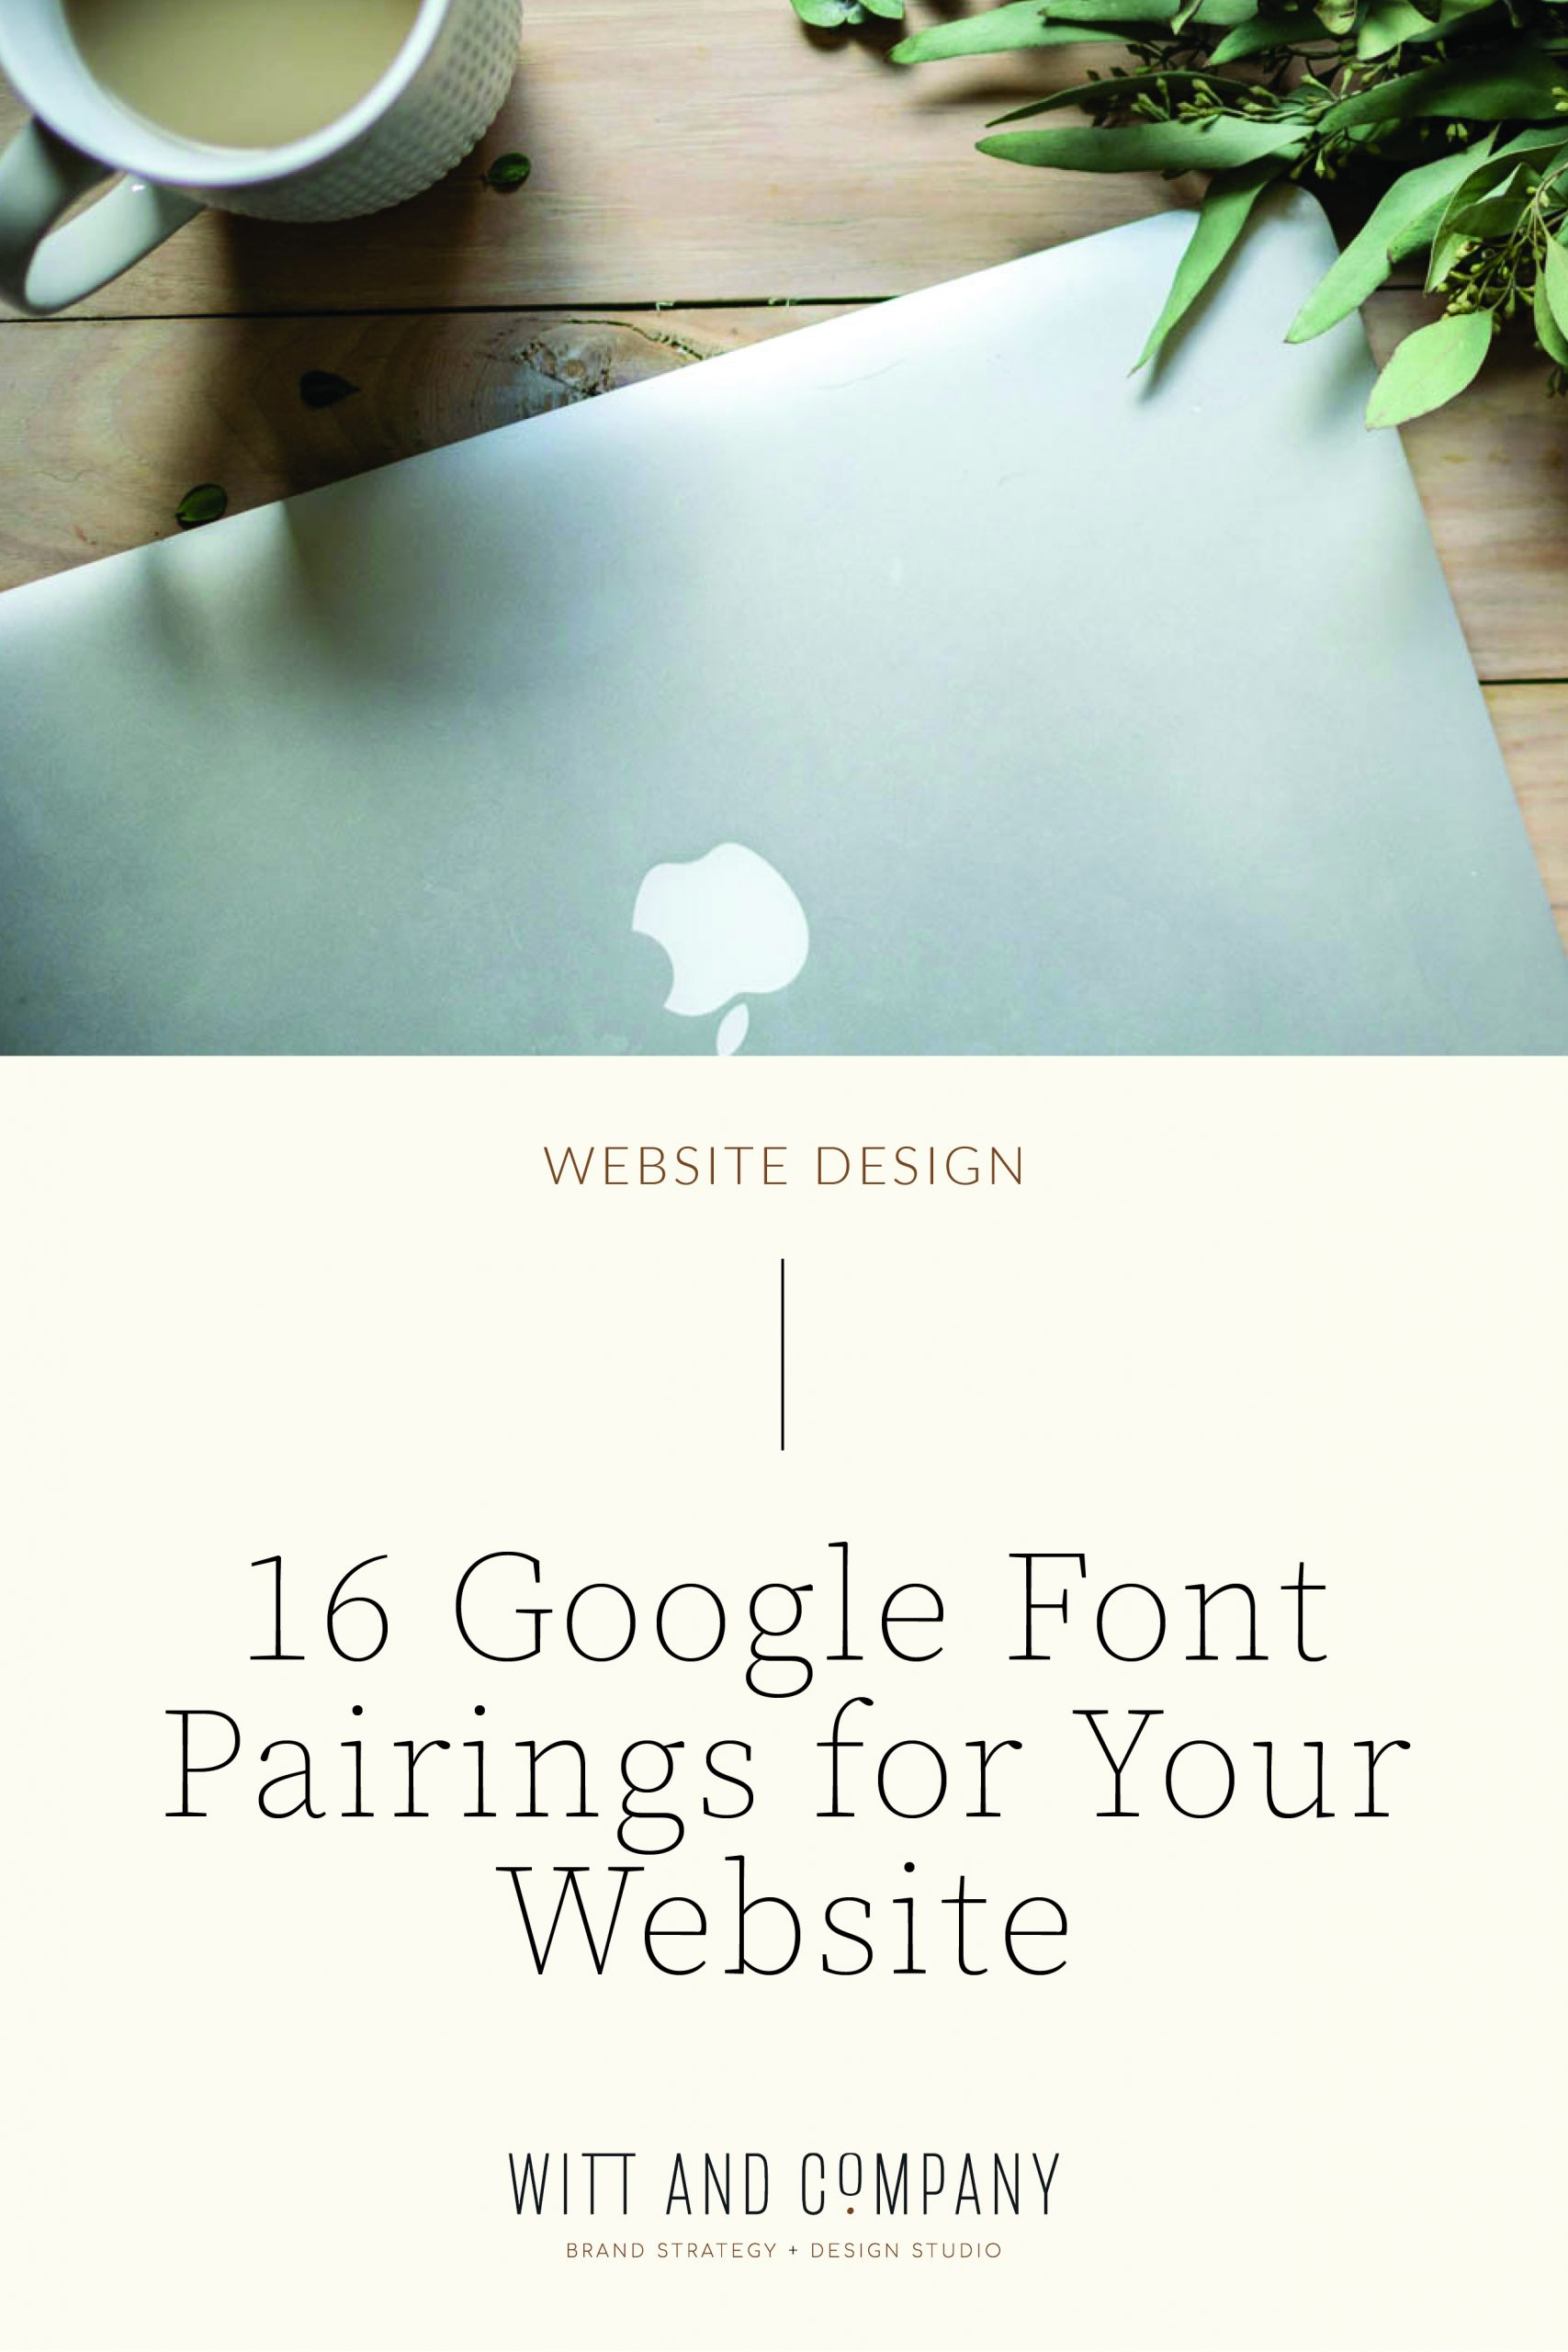 16 Google Font Pairings for Your Website